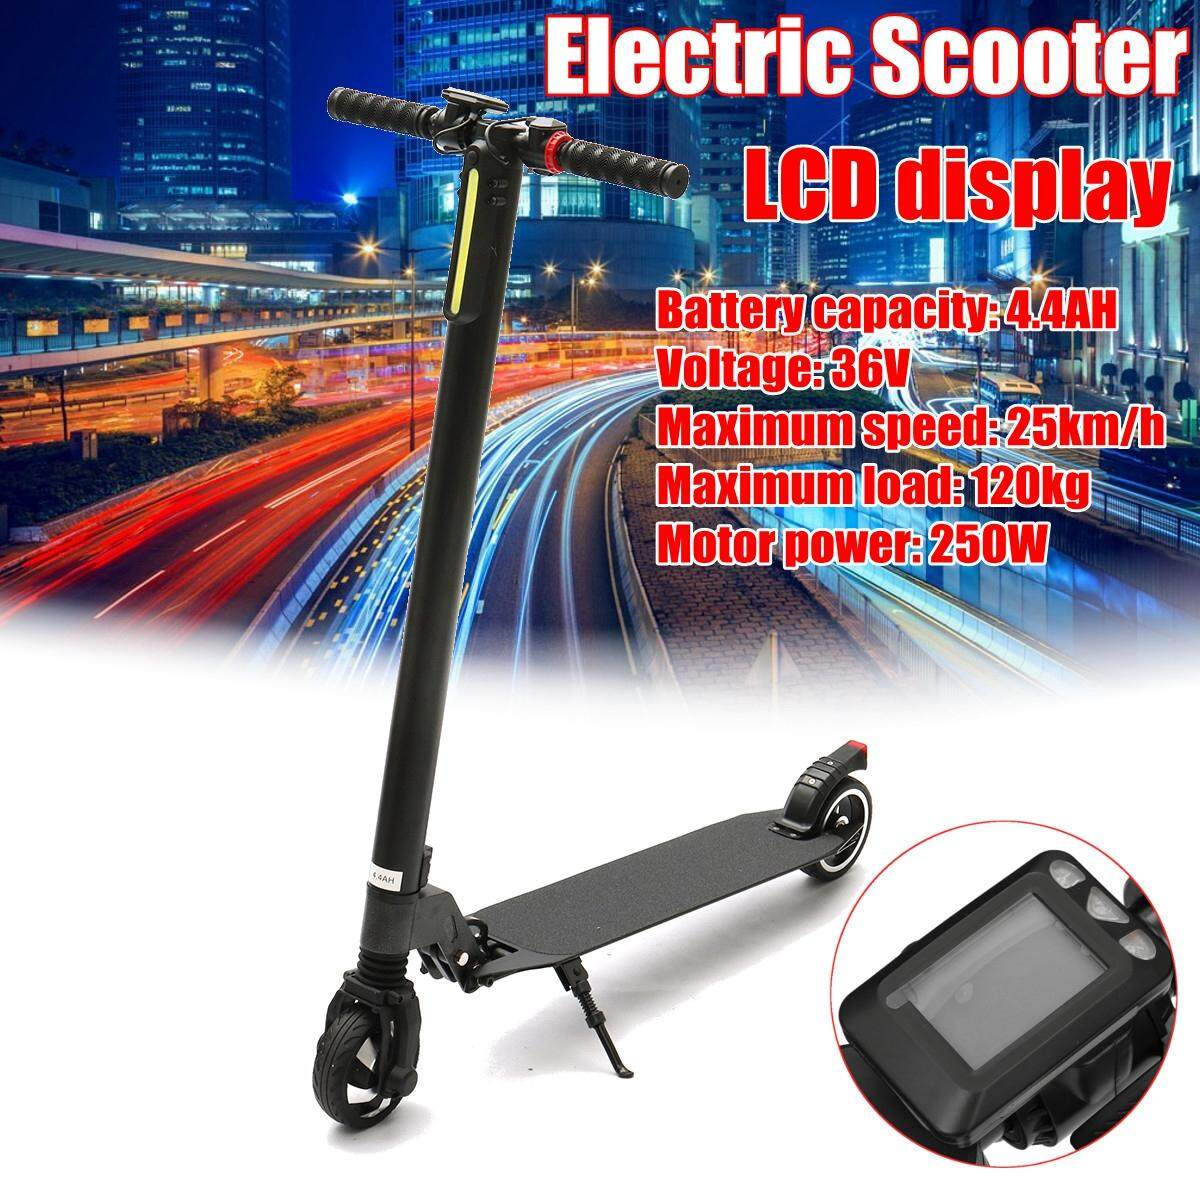 250w Electric Scooter Ultralight Folding Kick Scooter Outdoor Ride Exercise Au By Freebang.